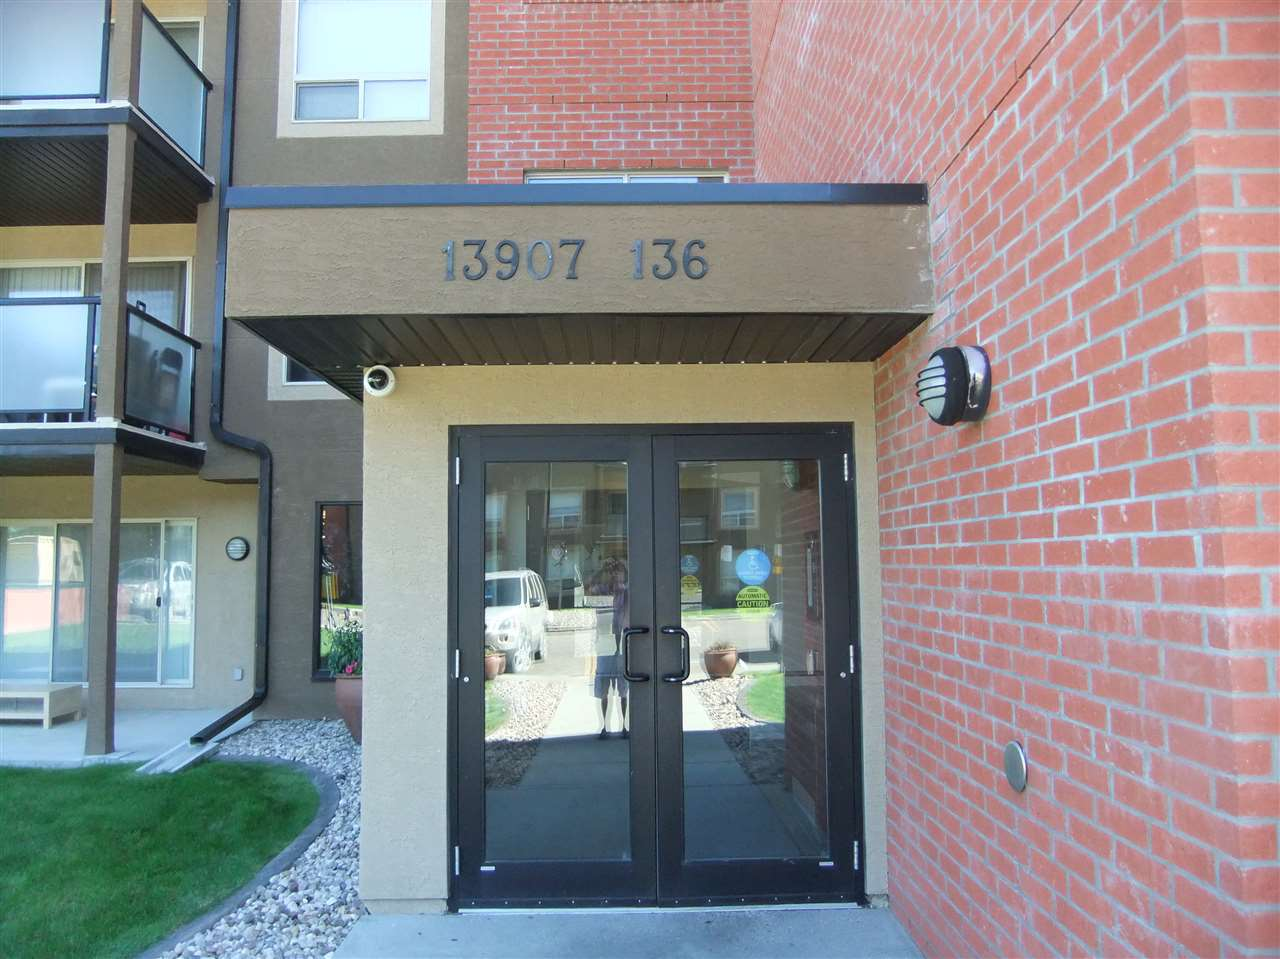 Approx 640 Sq ft 1 bedroom condo on 3rd floor with balcony in Hudson. 1 underground parking stall and storage unit. Car wash facility. Condo fee includes all utilities....asking $169.900, will look at offer.